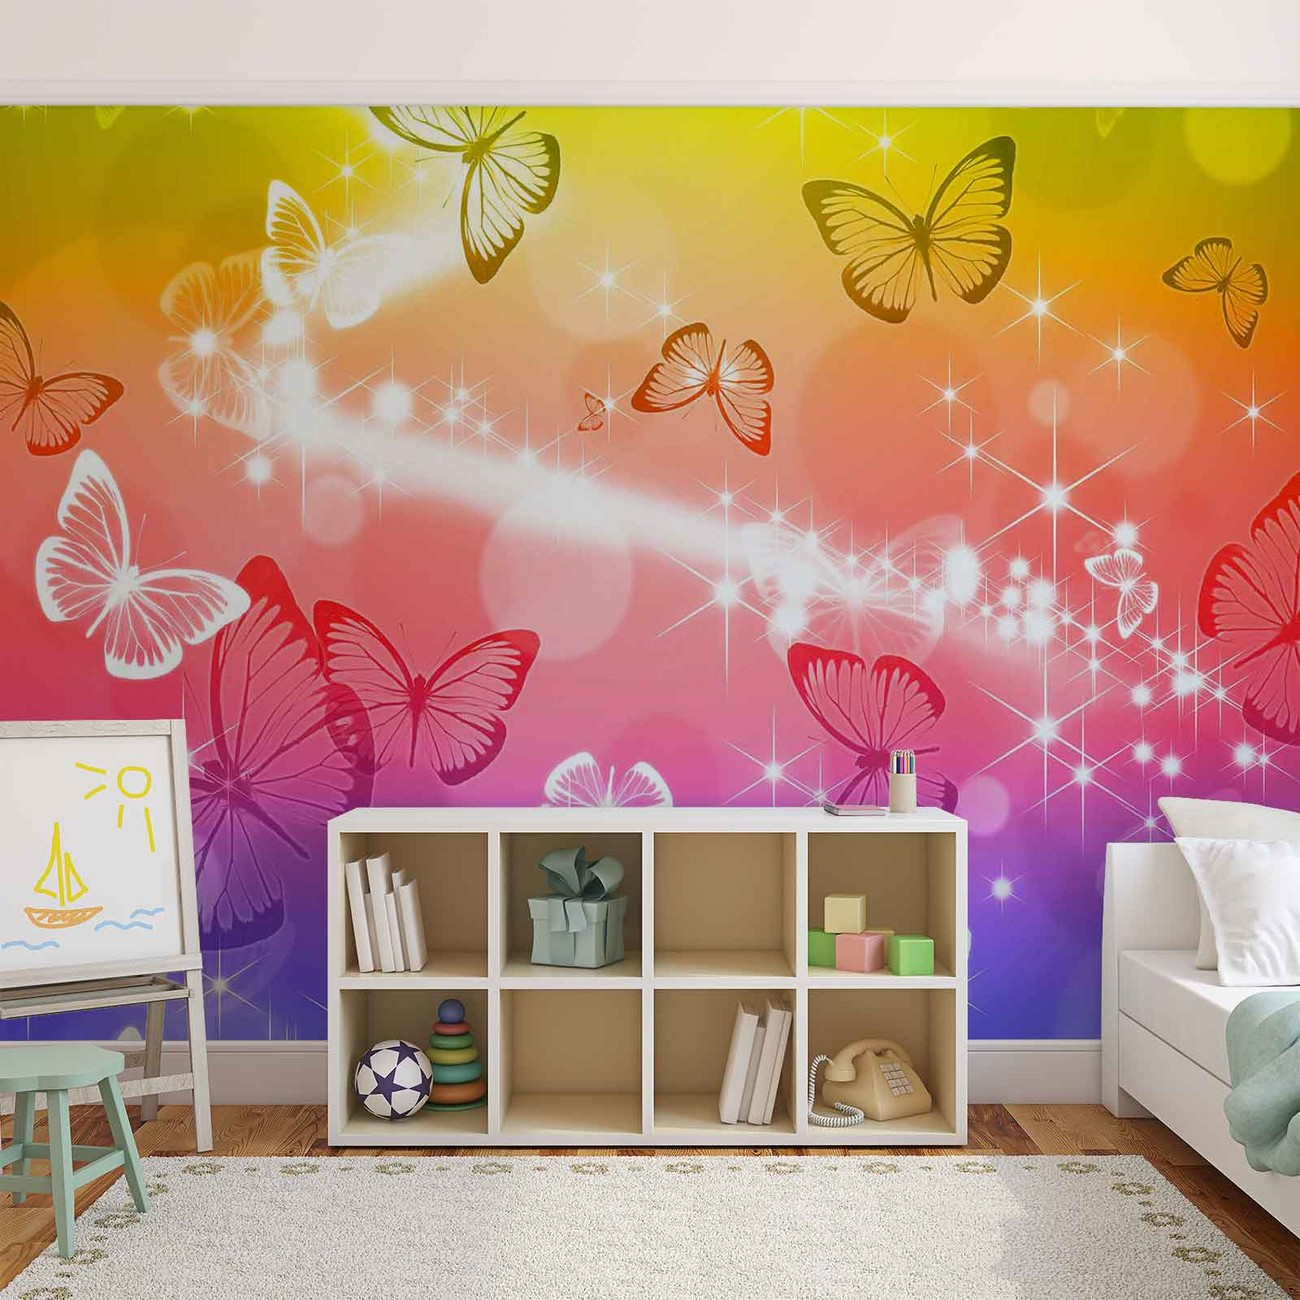 Butterflies wall paper mural buy at europosters for Butterfly wall mural